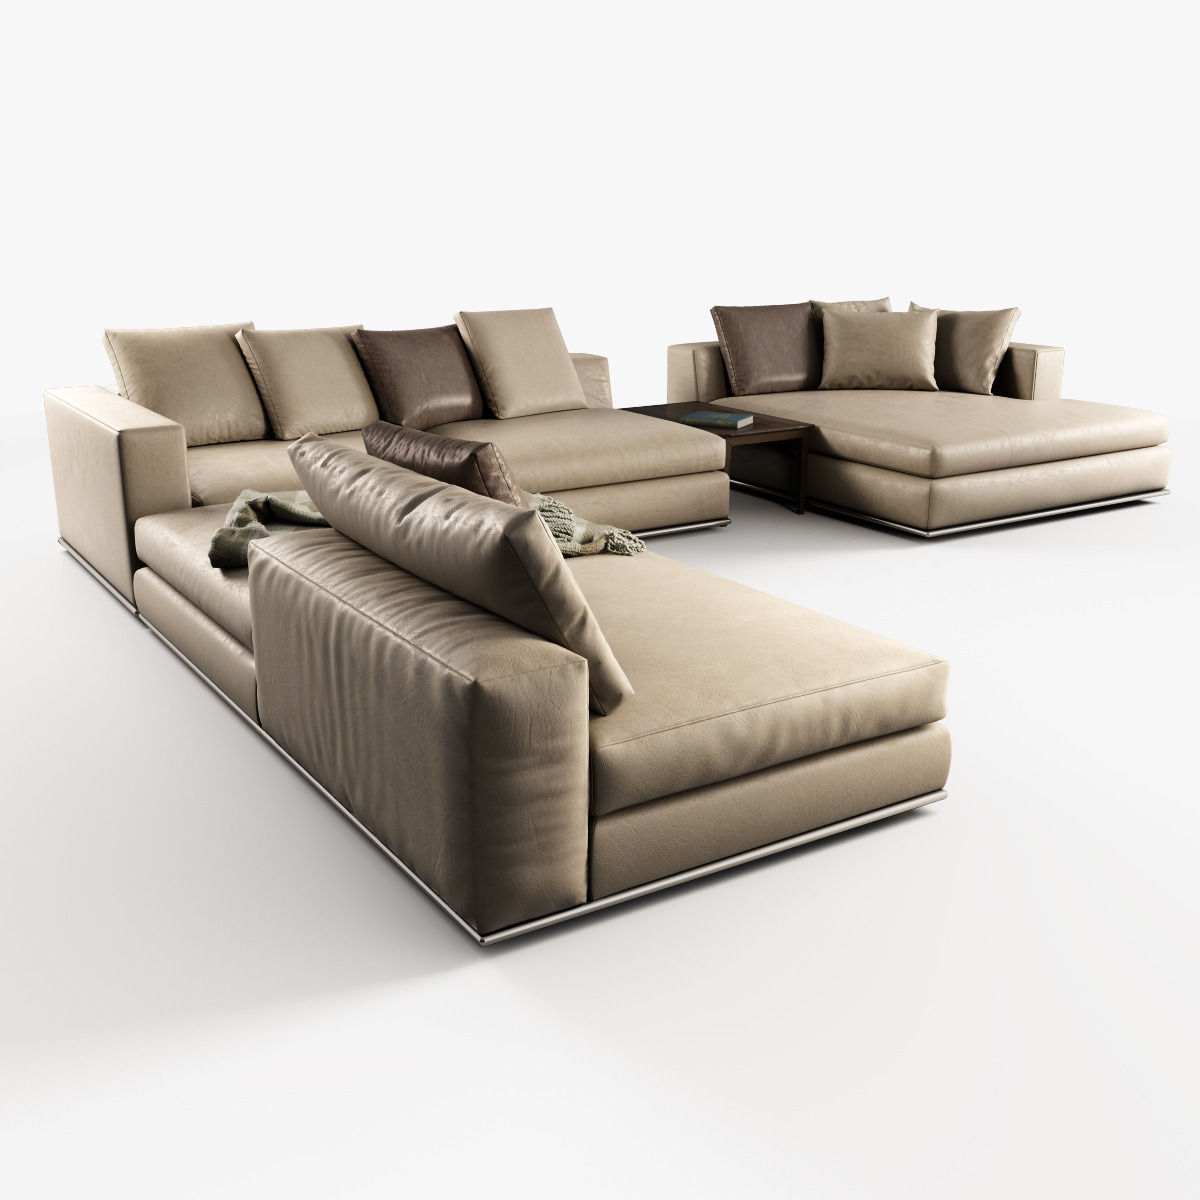 Modular Furniture Sofa: Hamilton Modular Sofas 3D Model MAX OBJ